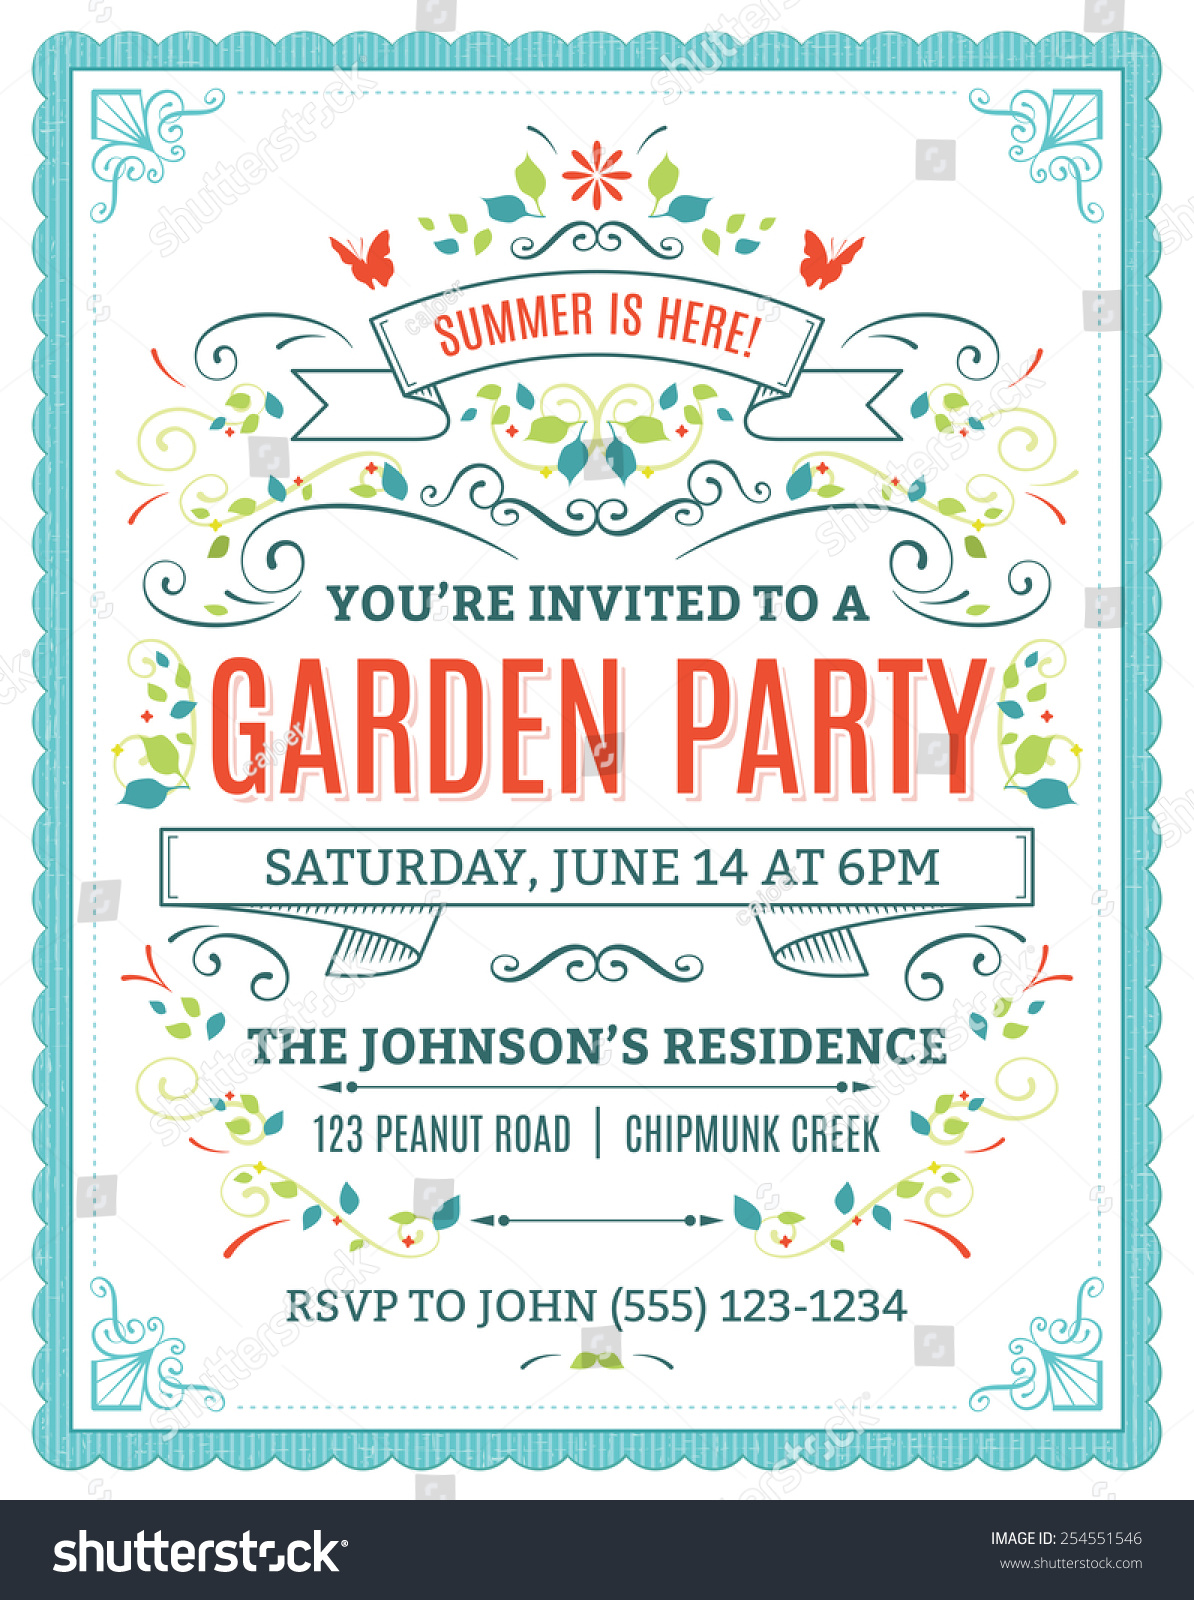 Vector Garden Party Invitation Ornaments Ribbons Stock Vector